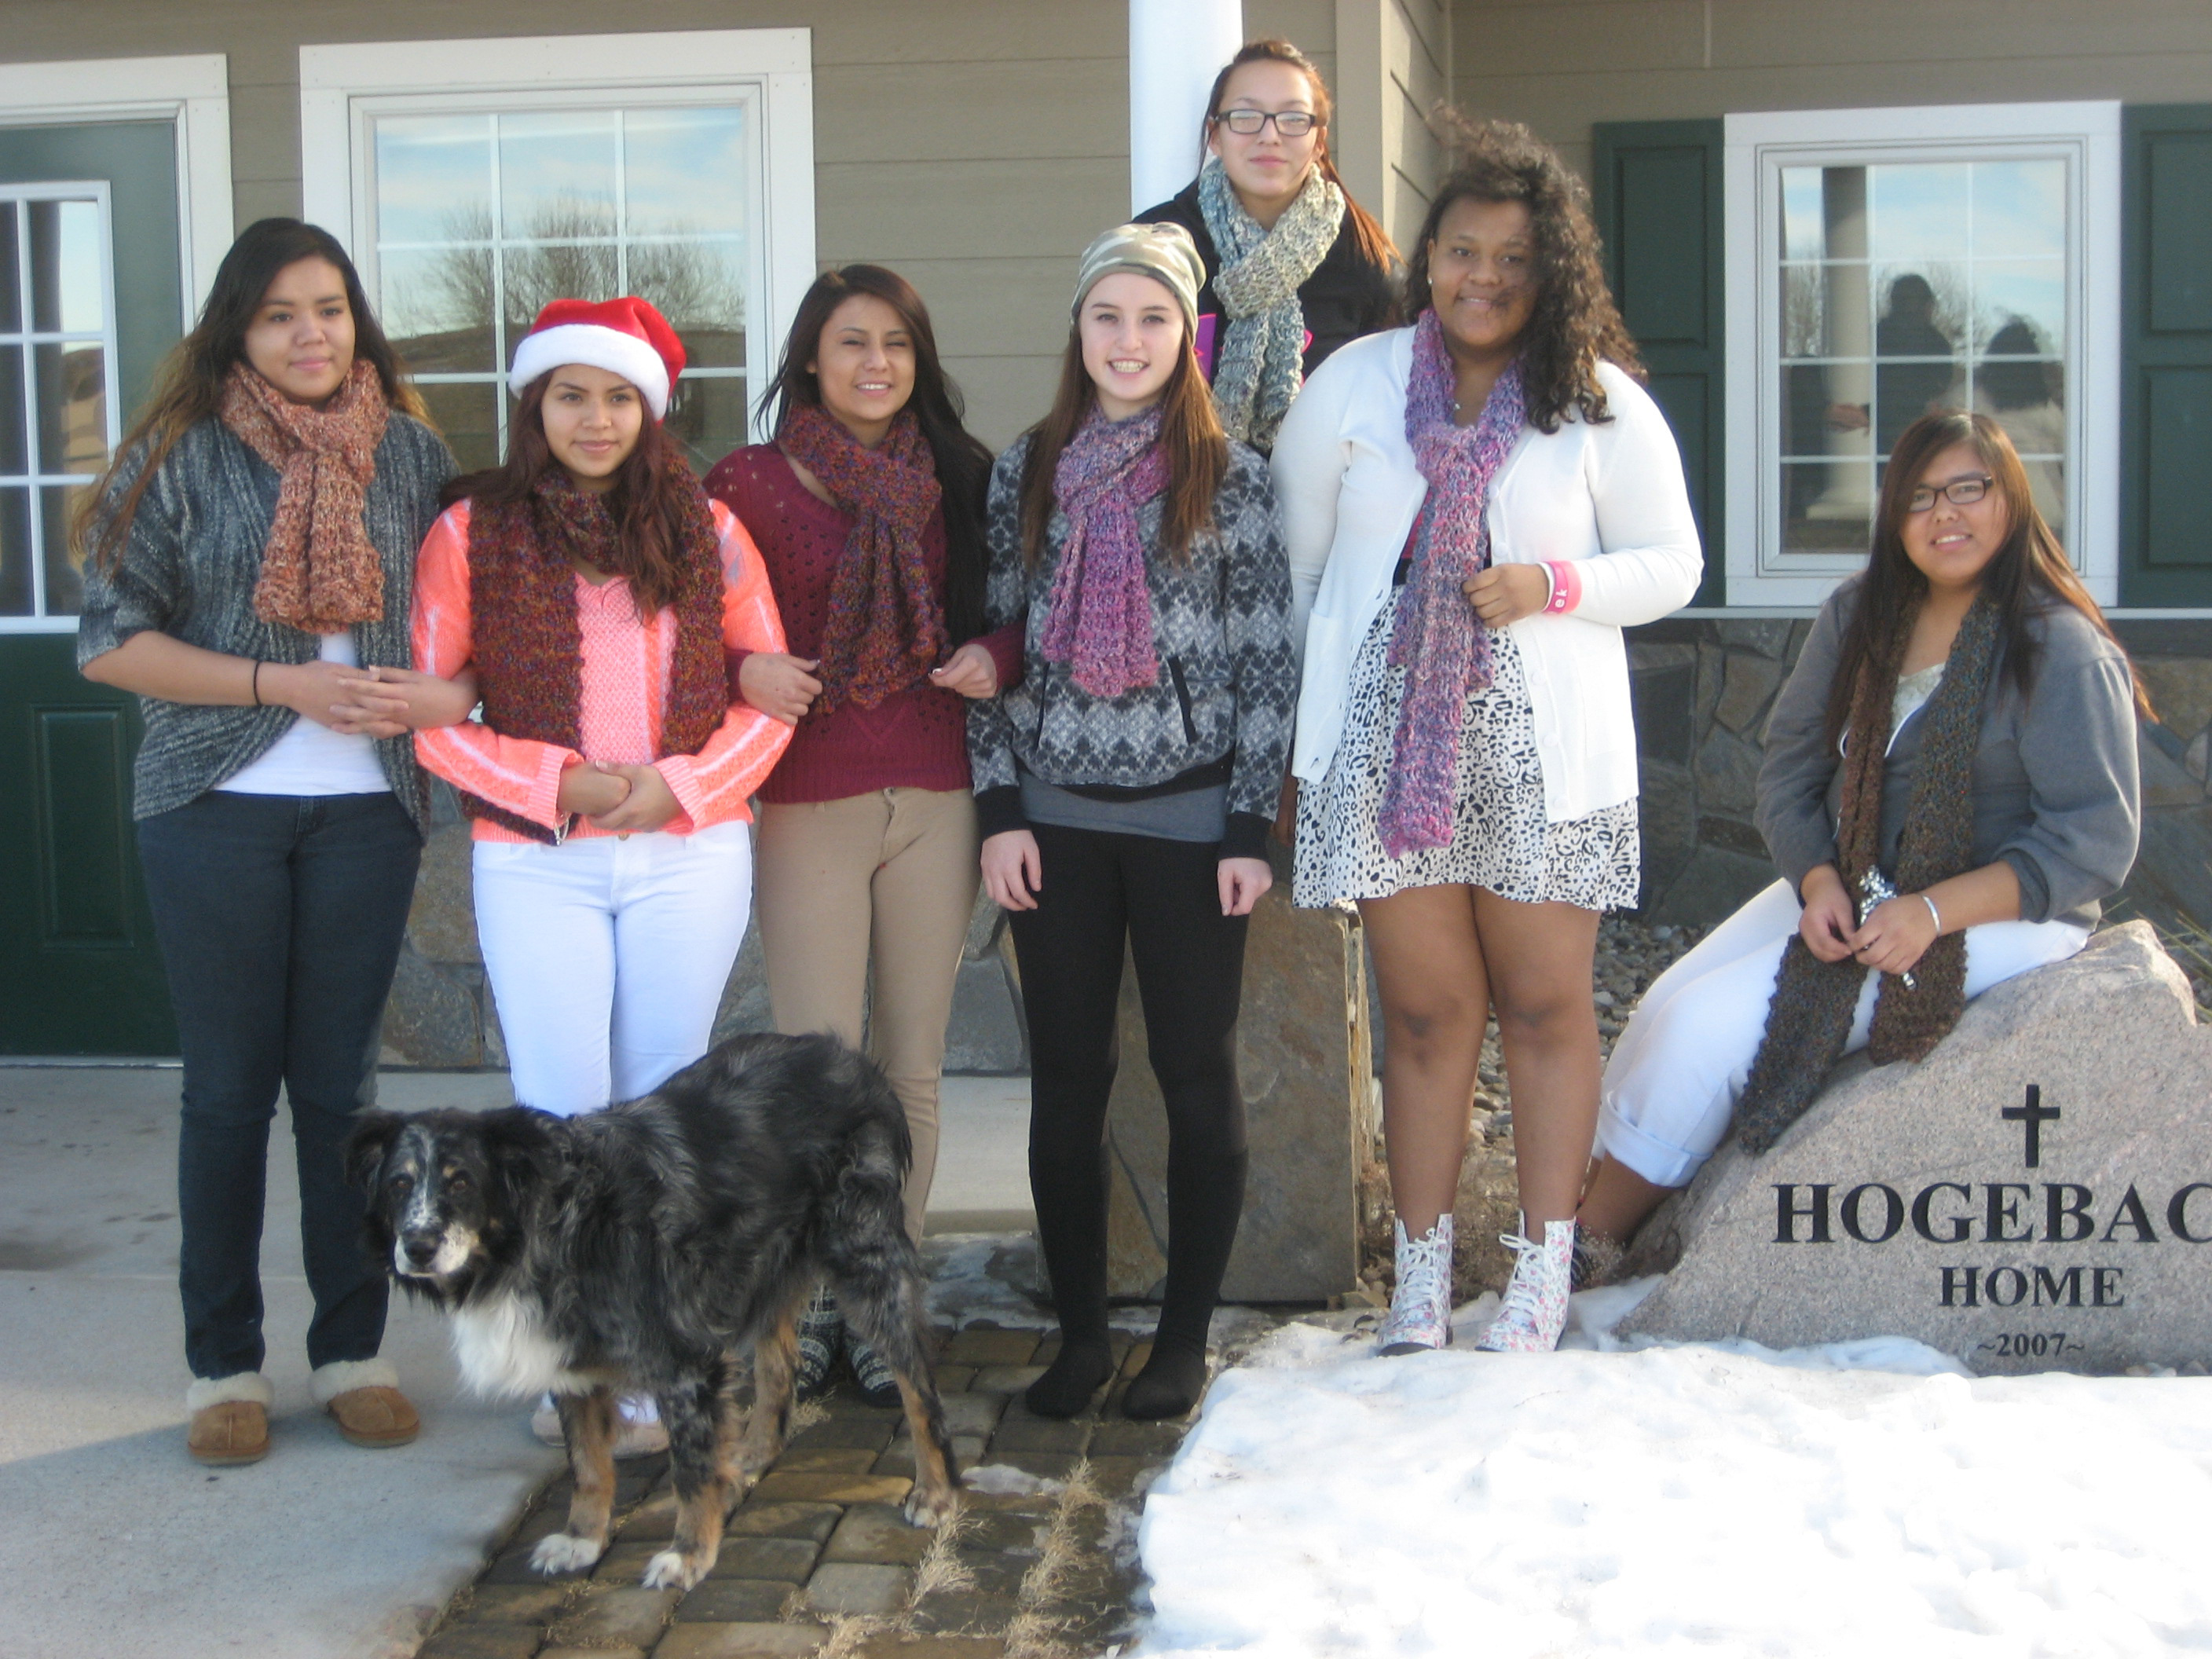 There are two freshmen and six upperclassmen in St. Joseph's Hogebach Home.